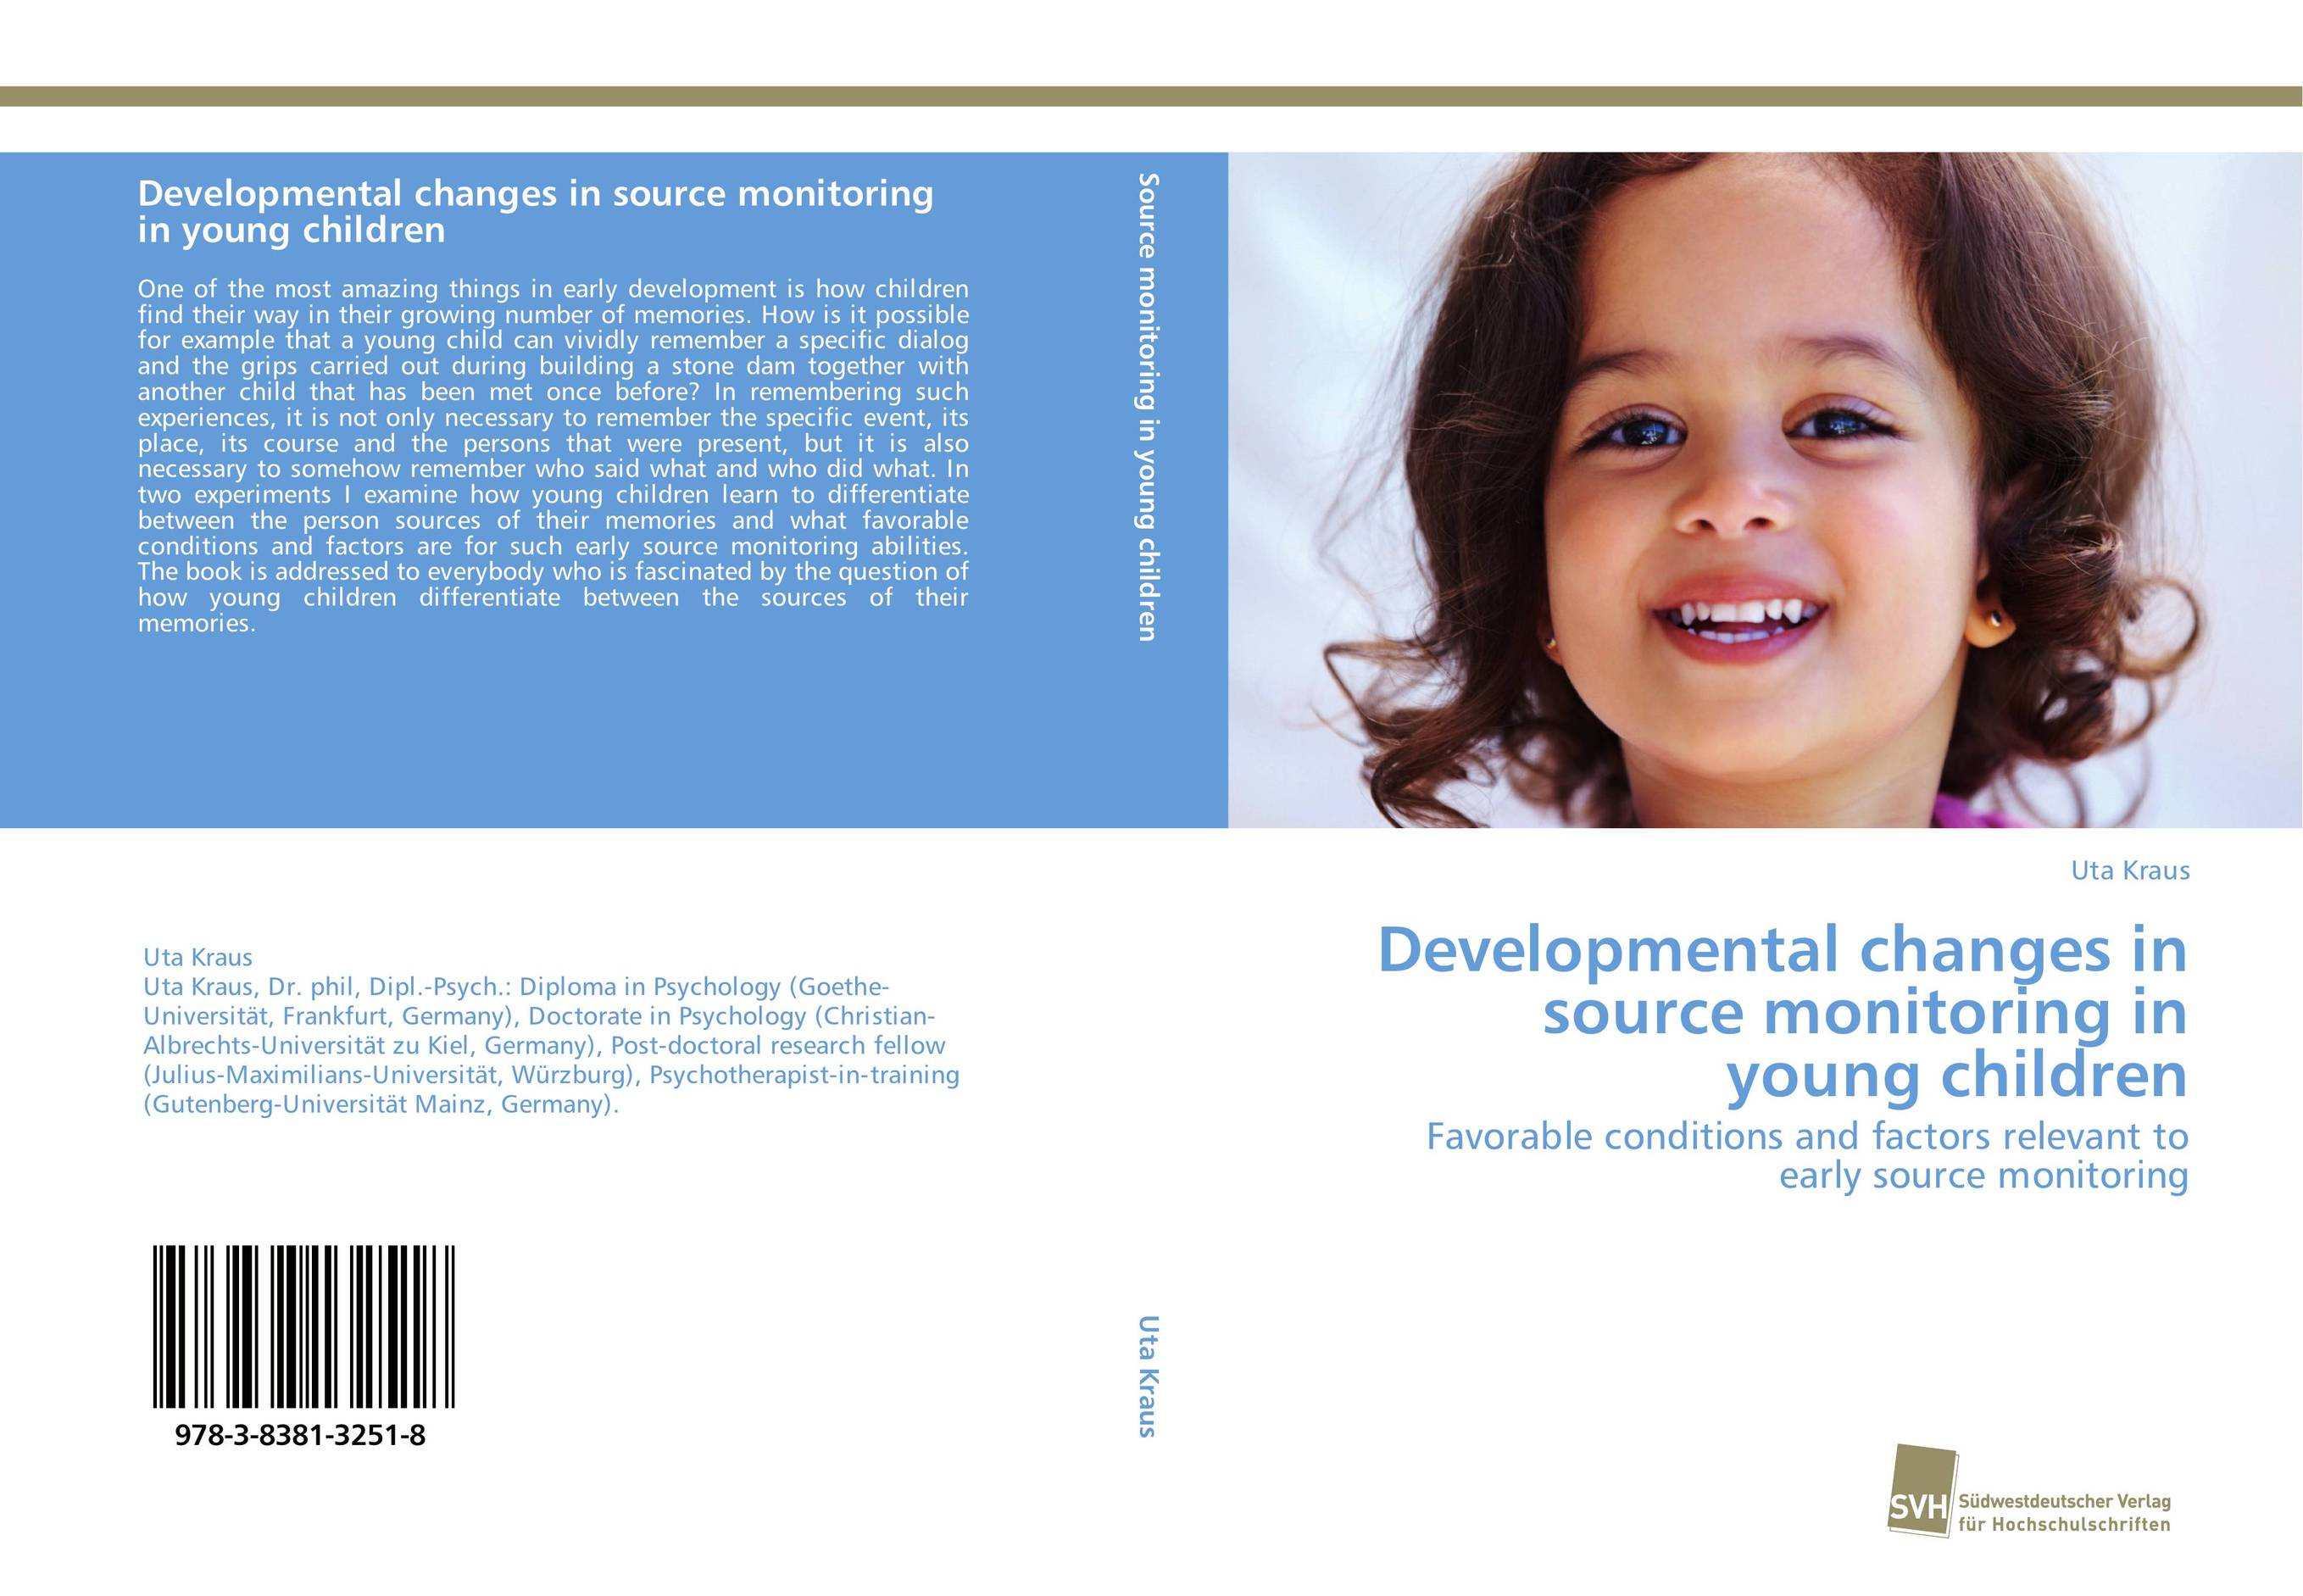 Developmental changes in source monitoring in young children under one cover eleven stories